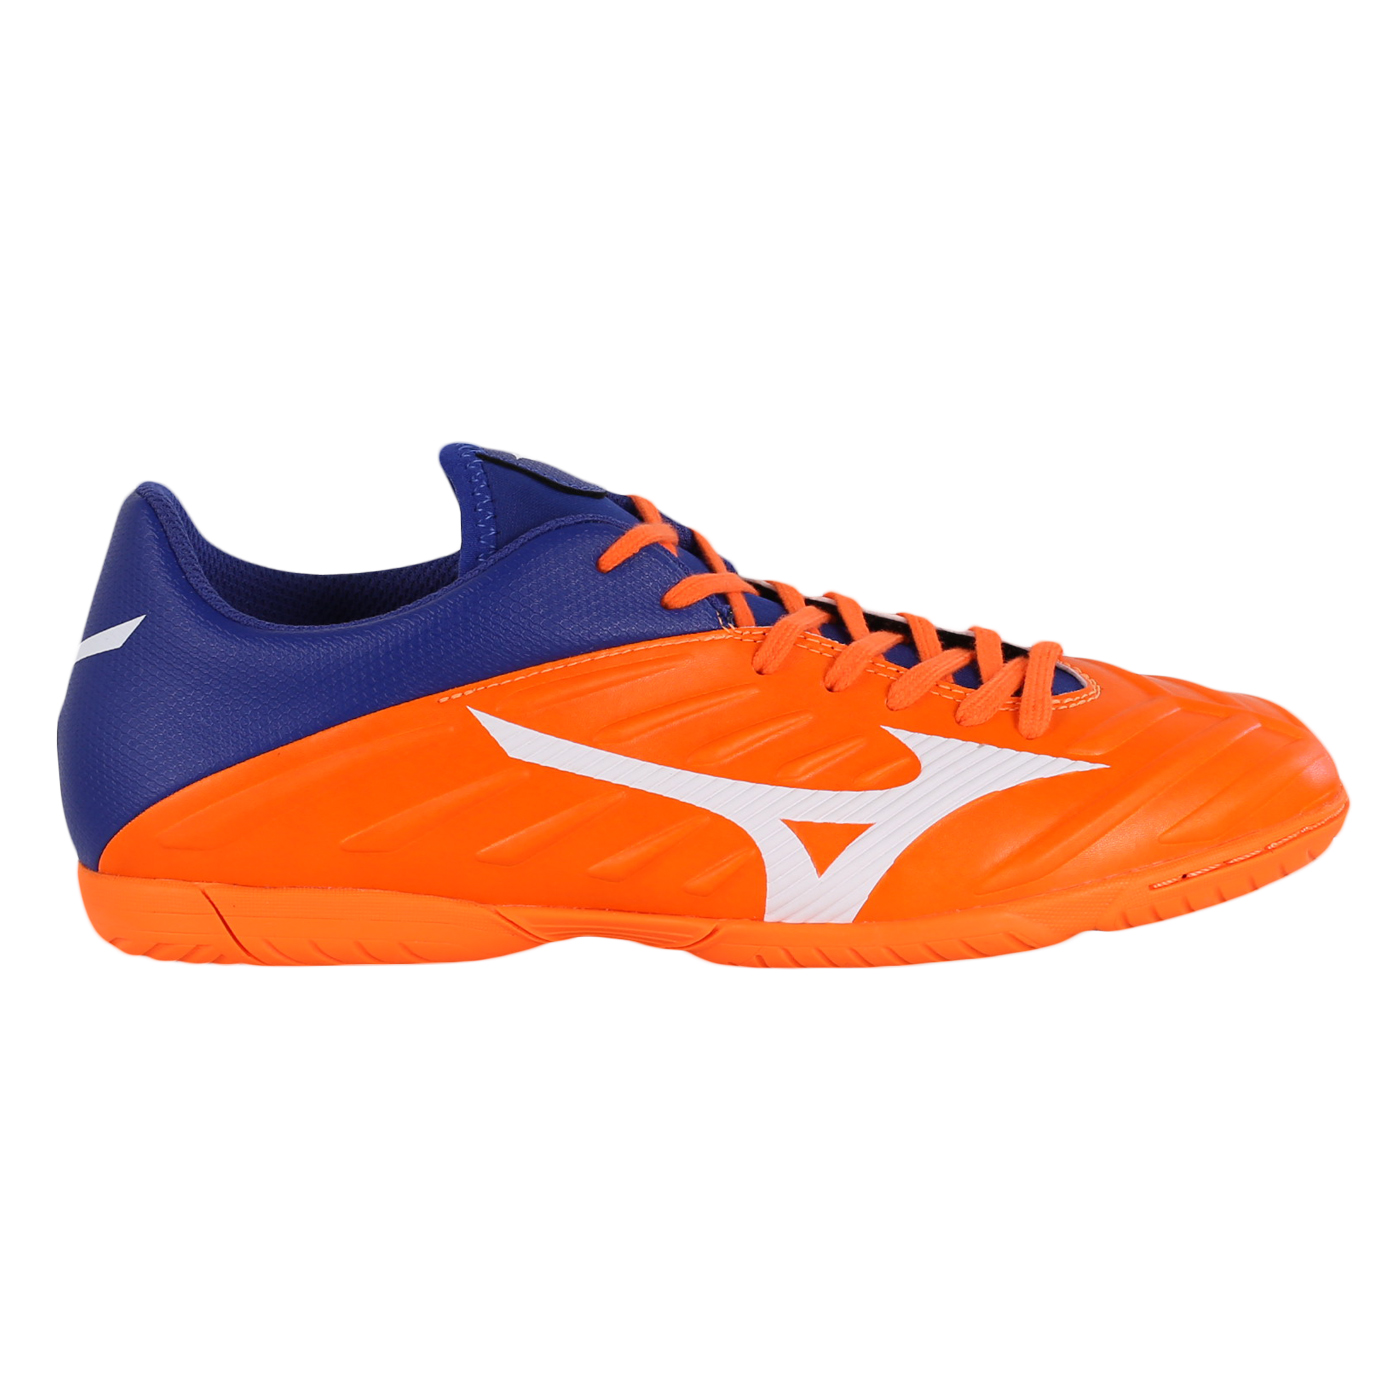 REBULA 2 V3 IN - ORANGE CLOWN FISH/ WHITE/ MAZARINE BLUE